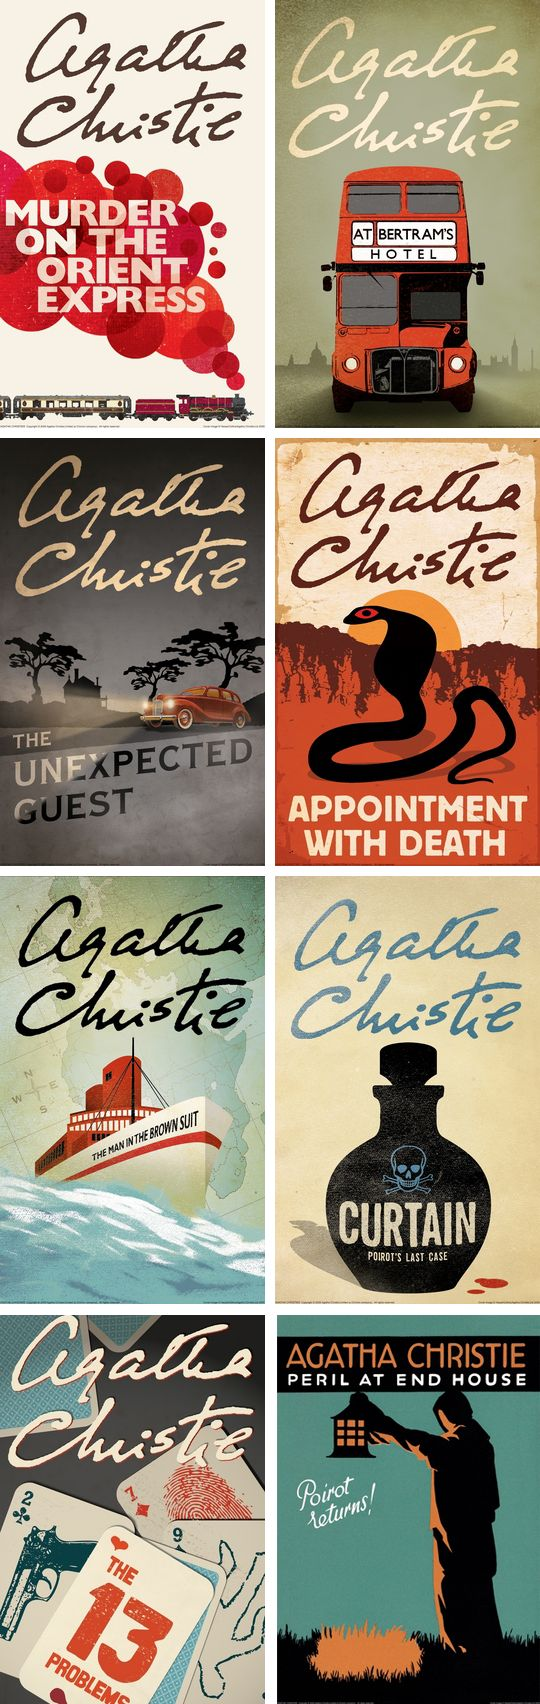 Agatha Christie - Love these wonderful vintage covers.